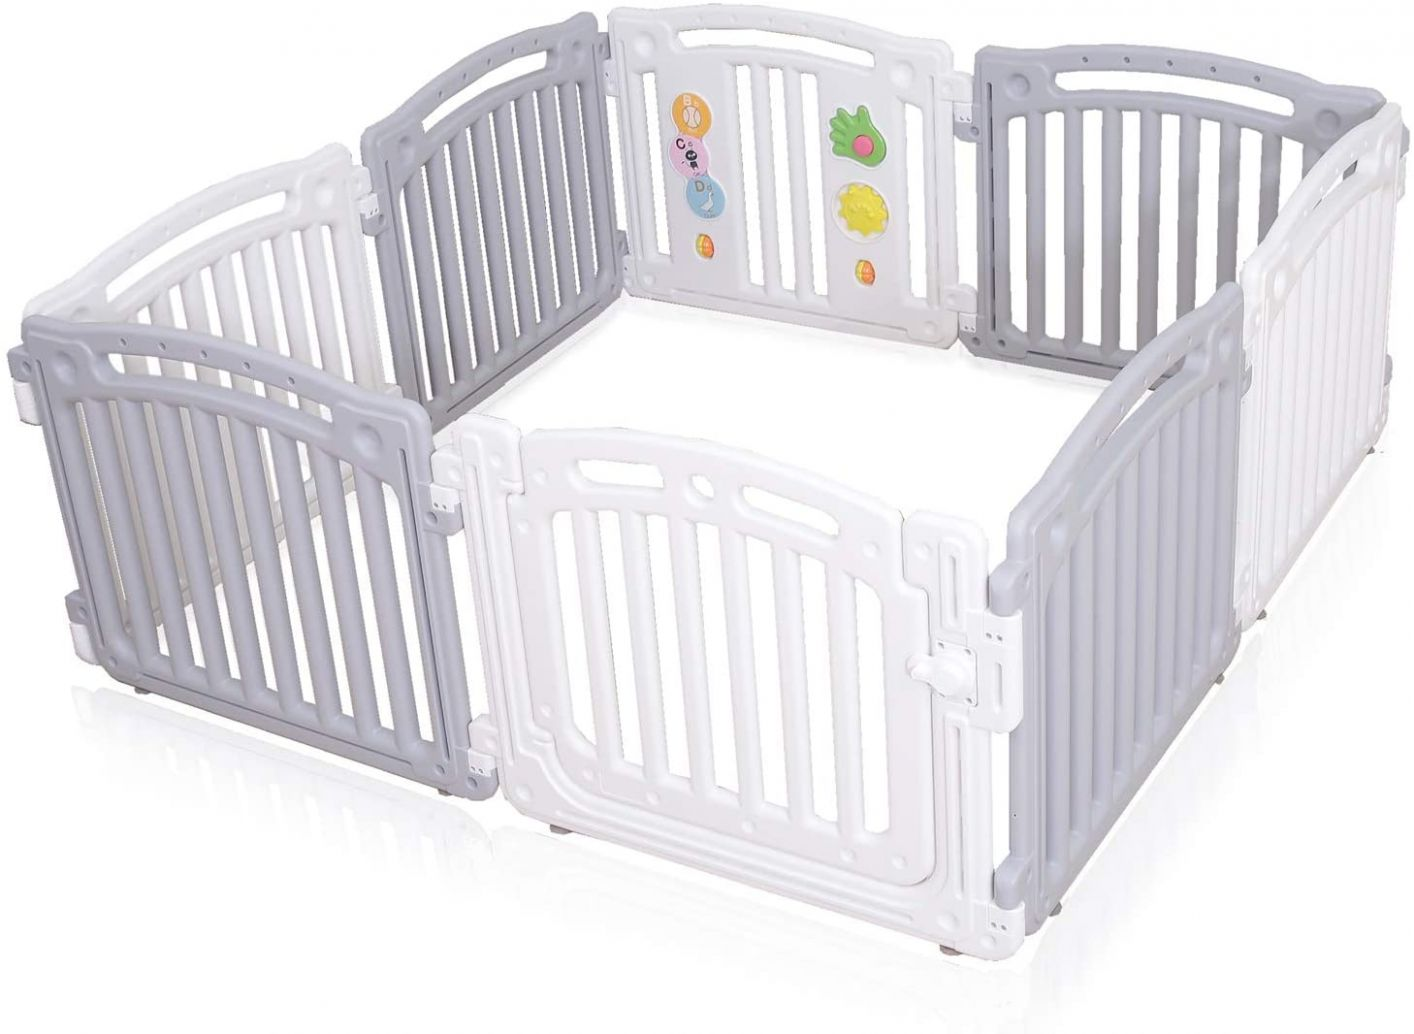 Large 1111 Panels Baby Plastic Playpen Room Divider 1111in11 Child Play ...